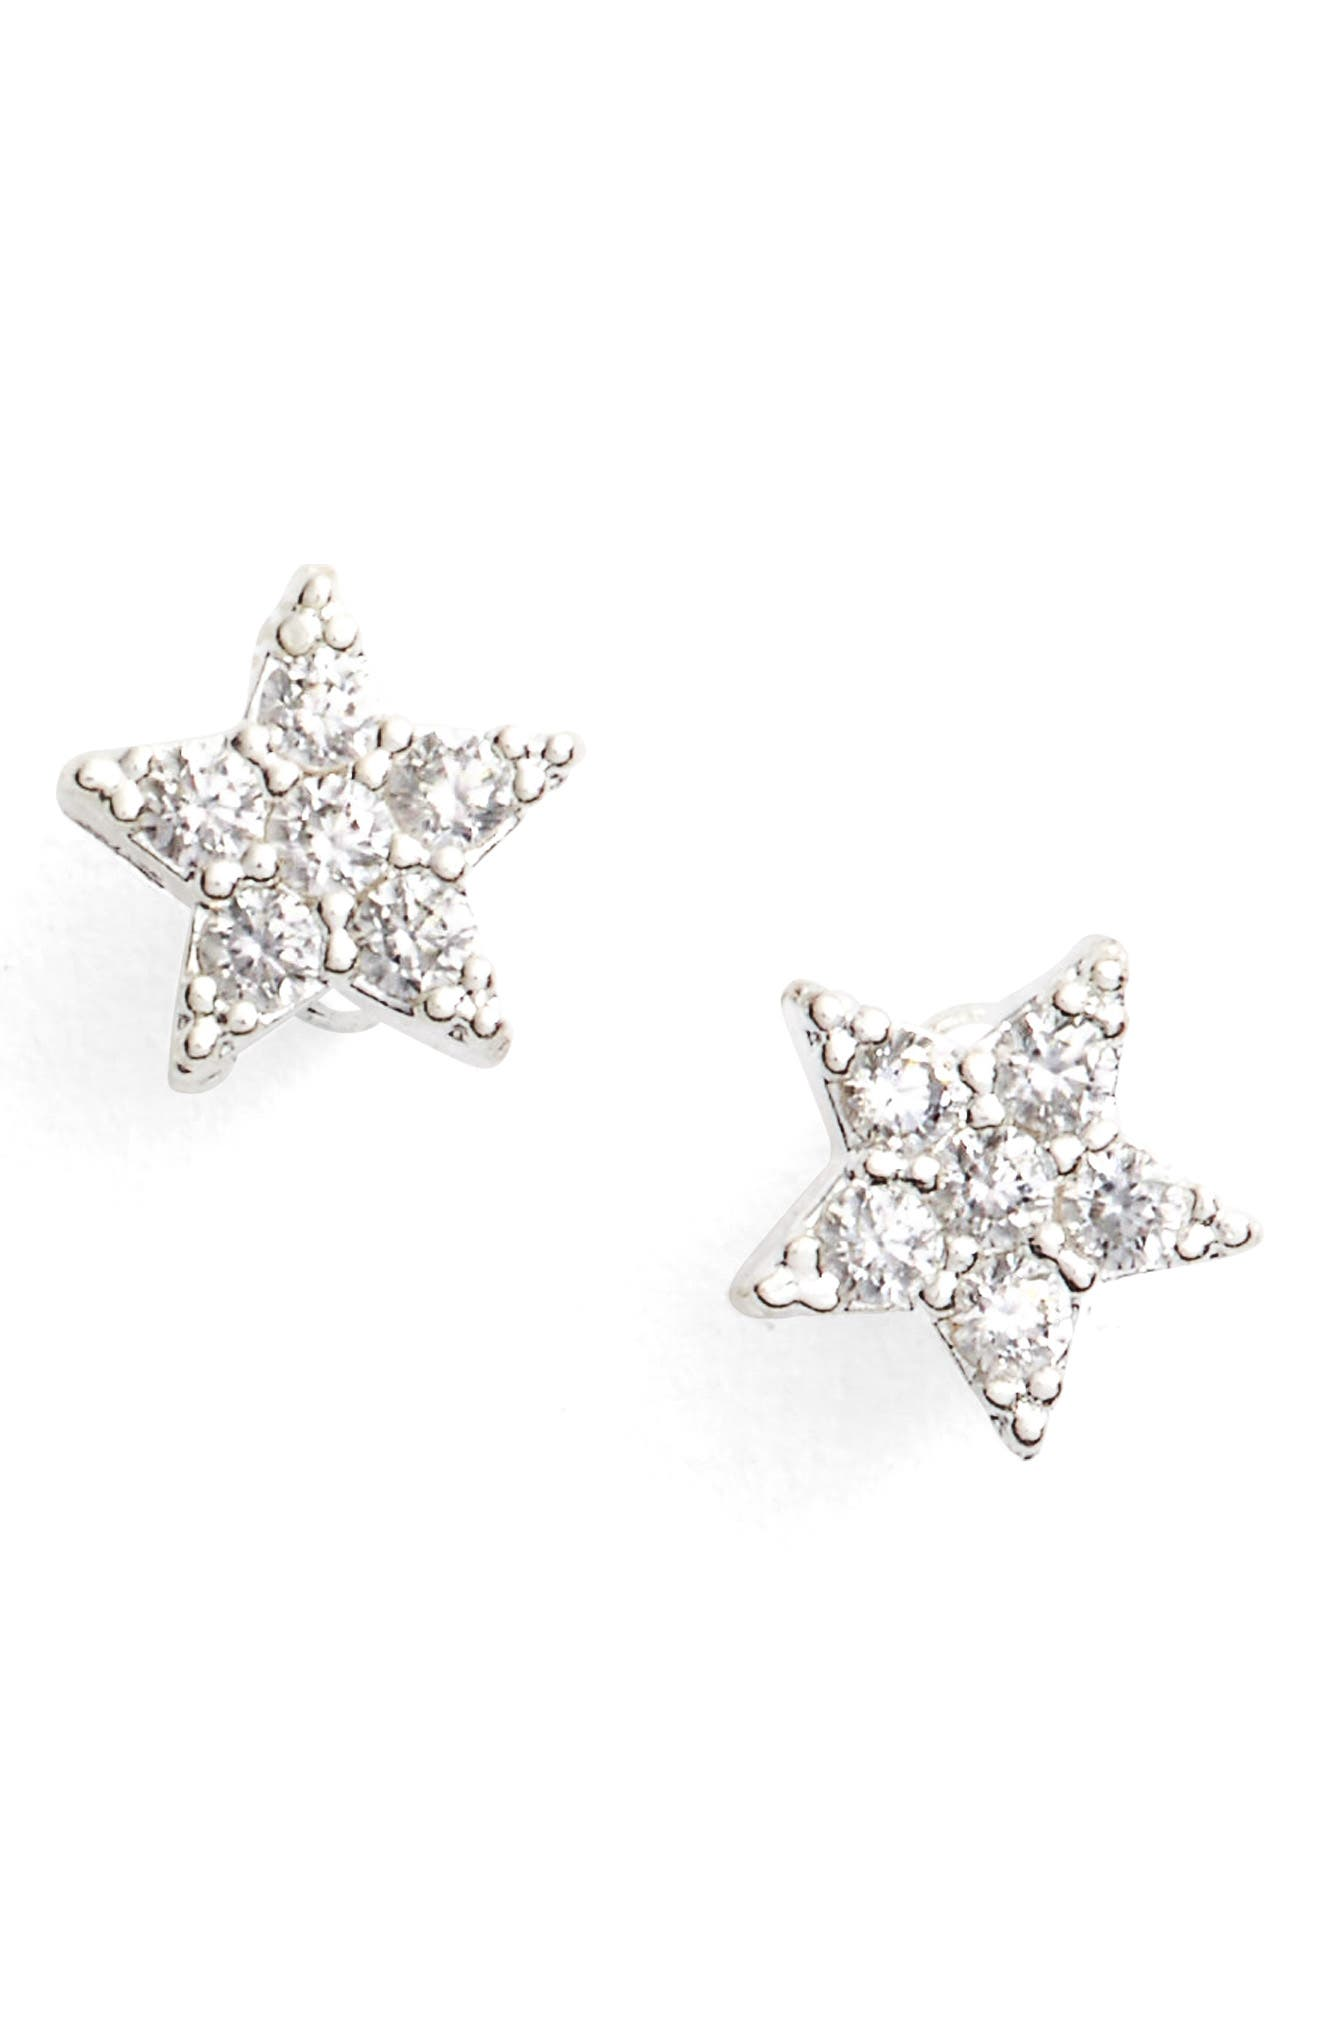 ESTELLA BARTLETT Shine Bright Star Stud Earrings in Silver